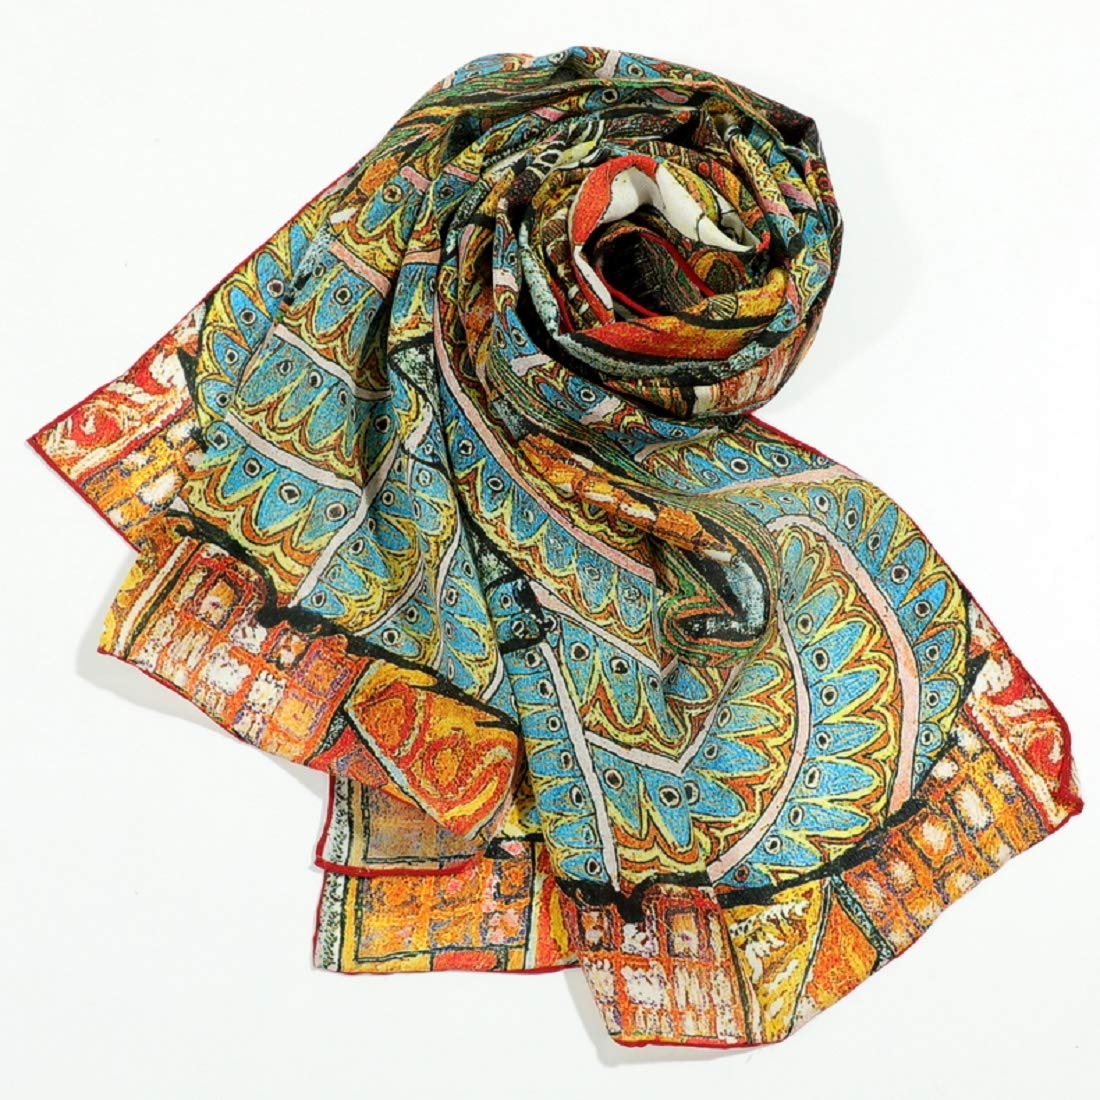 62 L*15.7 W 100/% Silk Charmeuse Long Scarf Shawl Art with Hand Rolled Edge